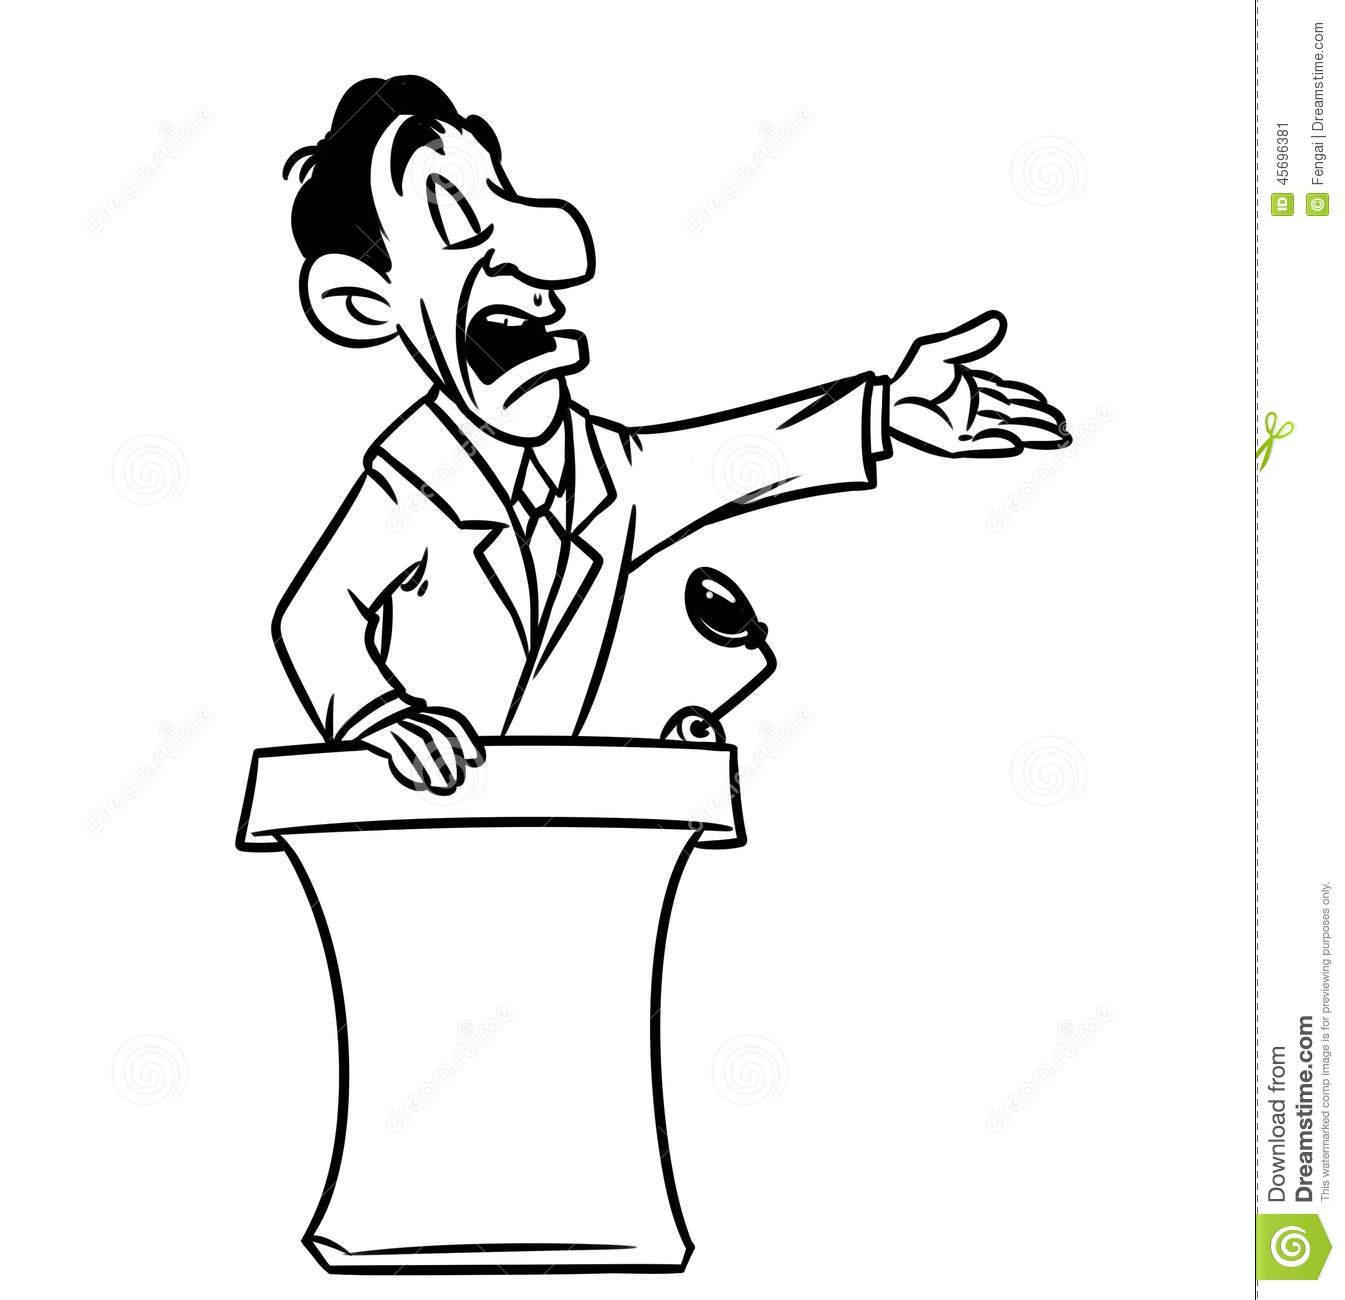 Politician Speech Speaker The Podium Stock Illustration   Image